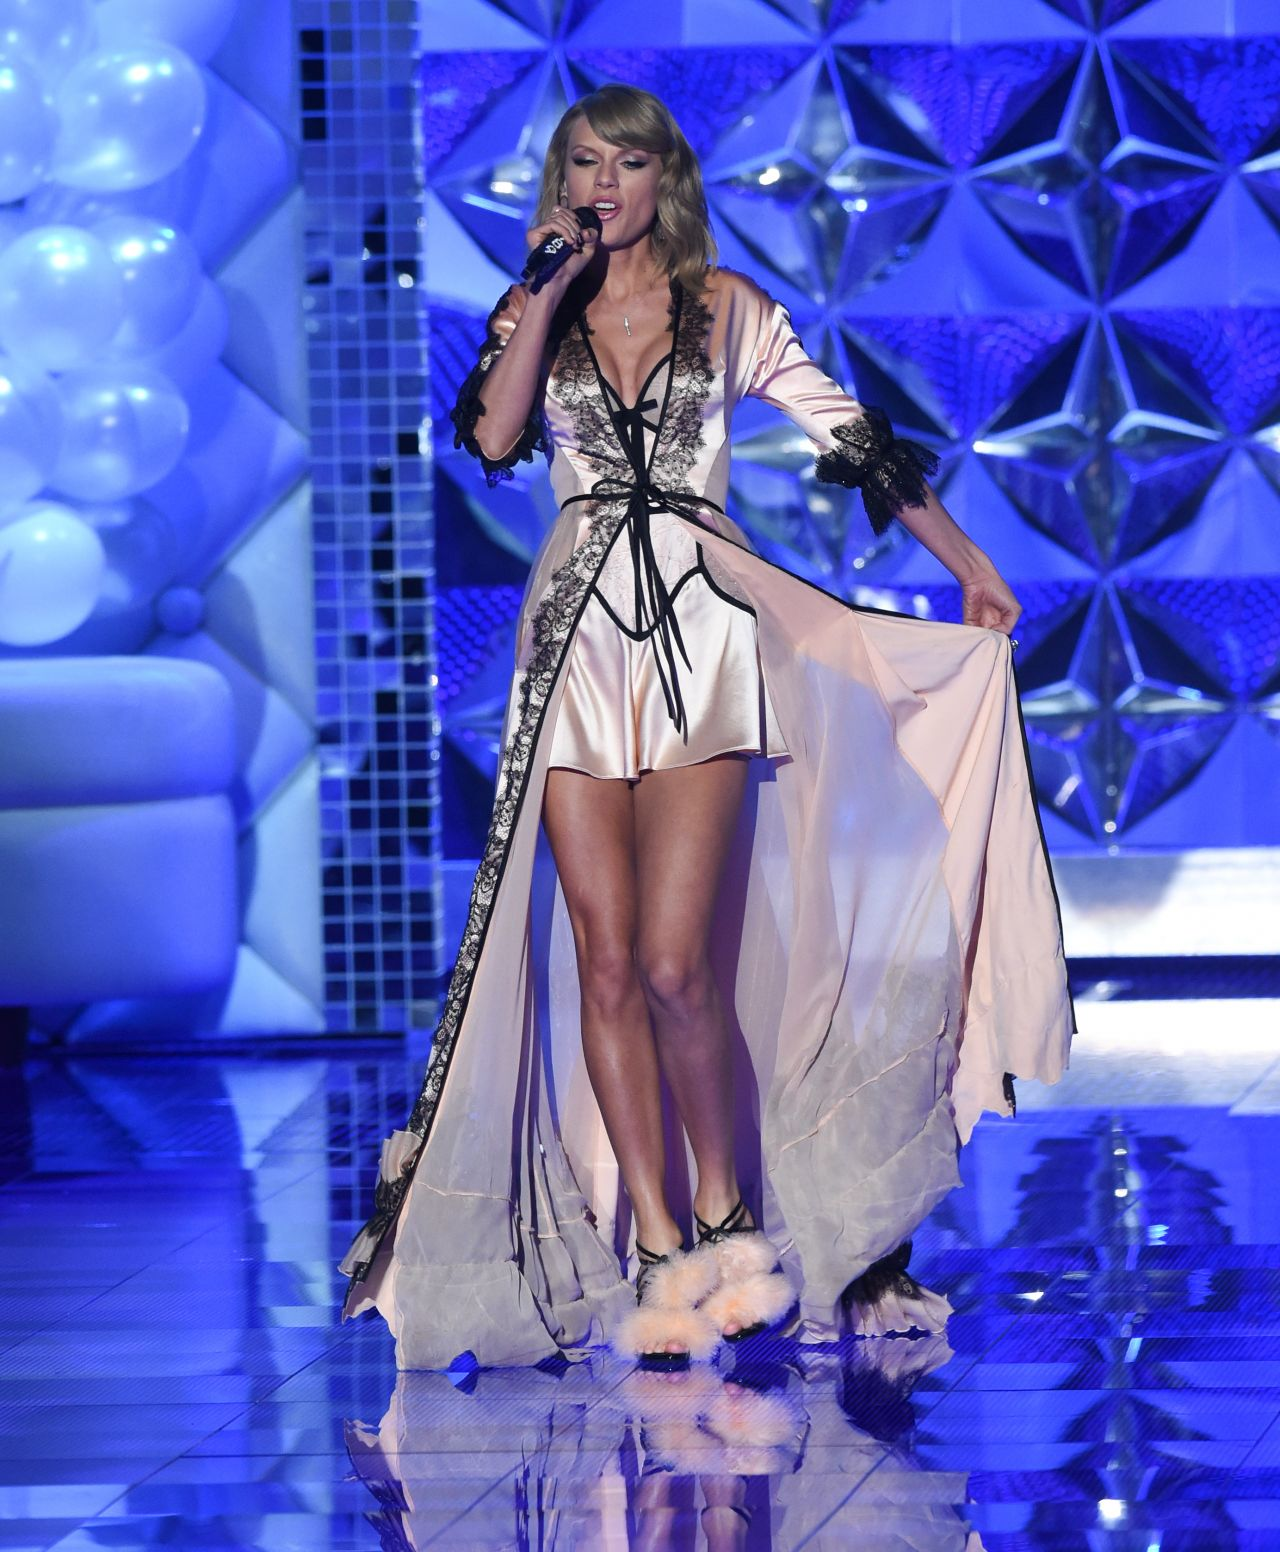 taylor swift performs at victorias secret fashion show in